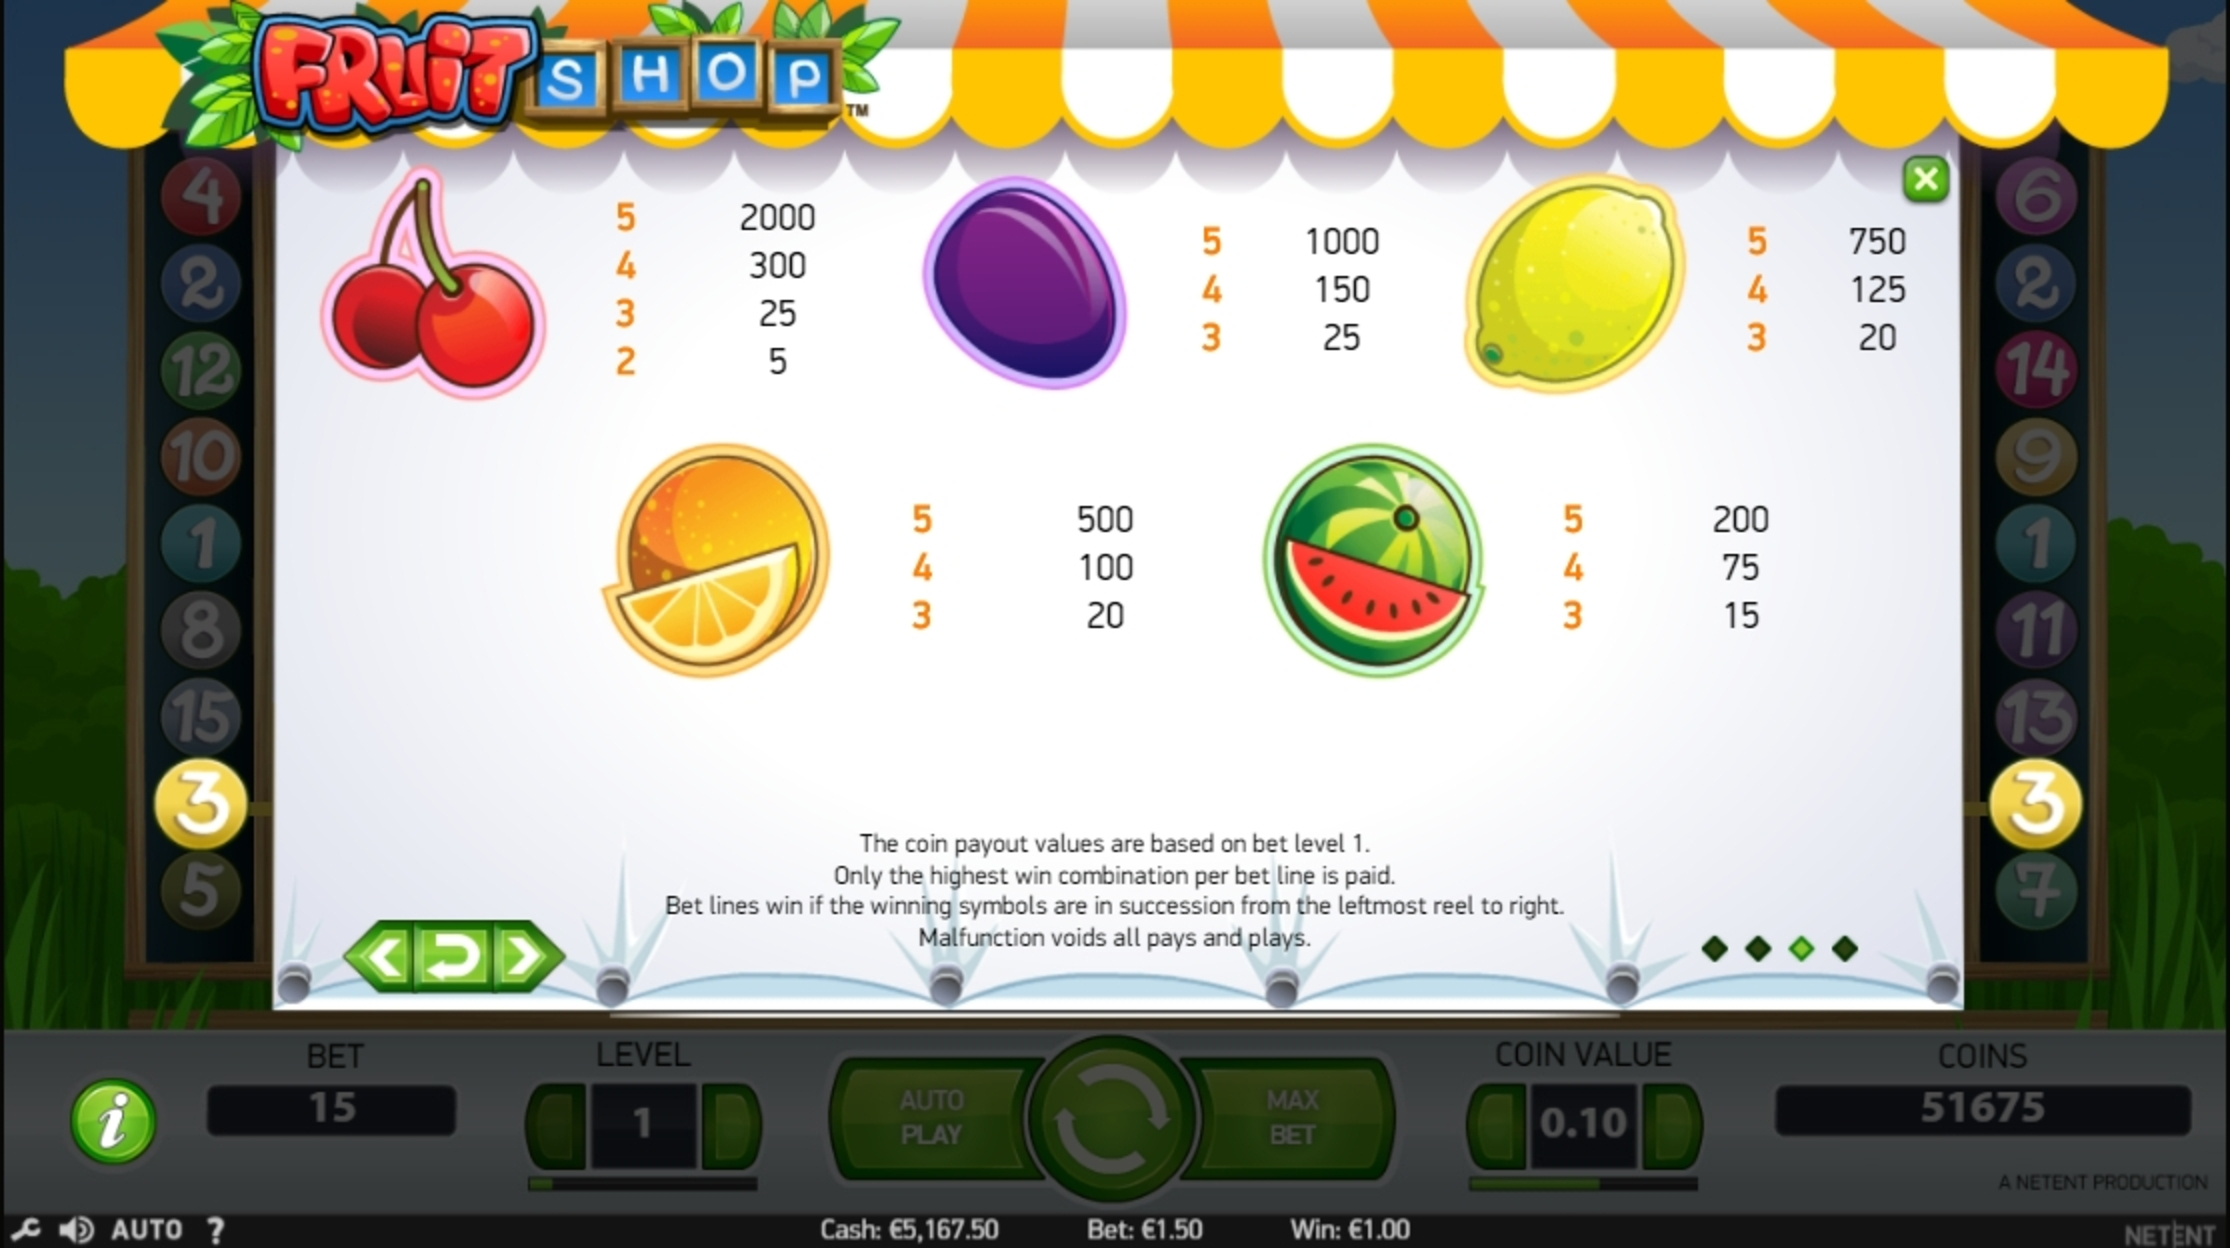 Info of Fruit Shop (NetEnt) Slot Game by NetEnt